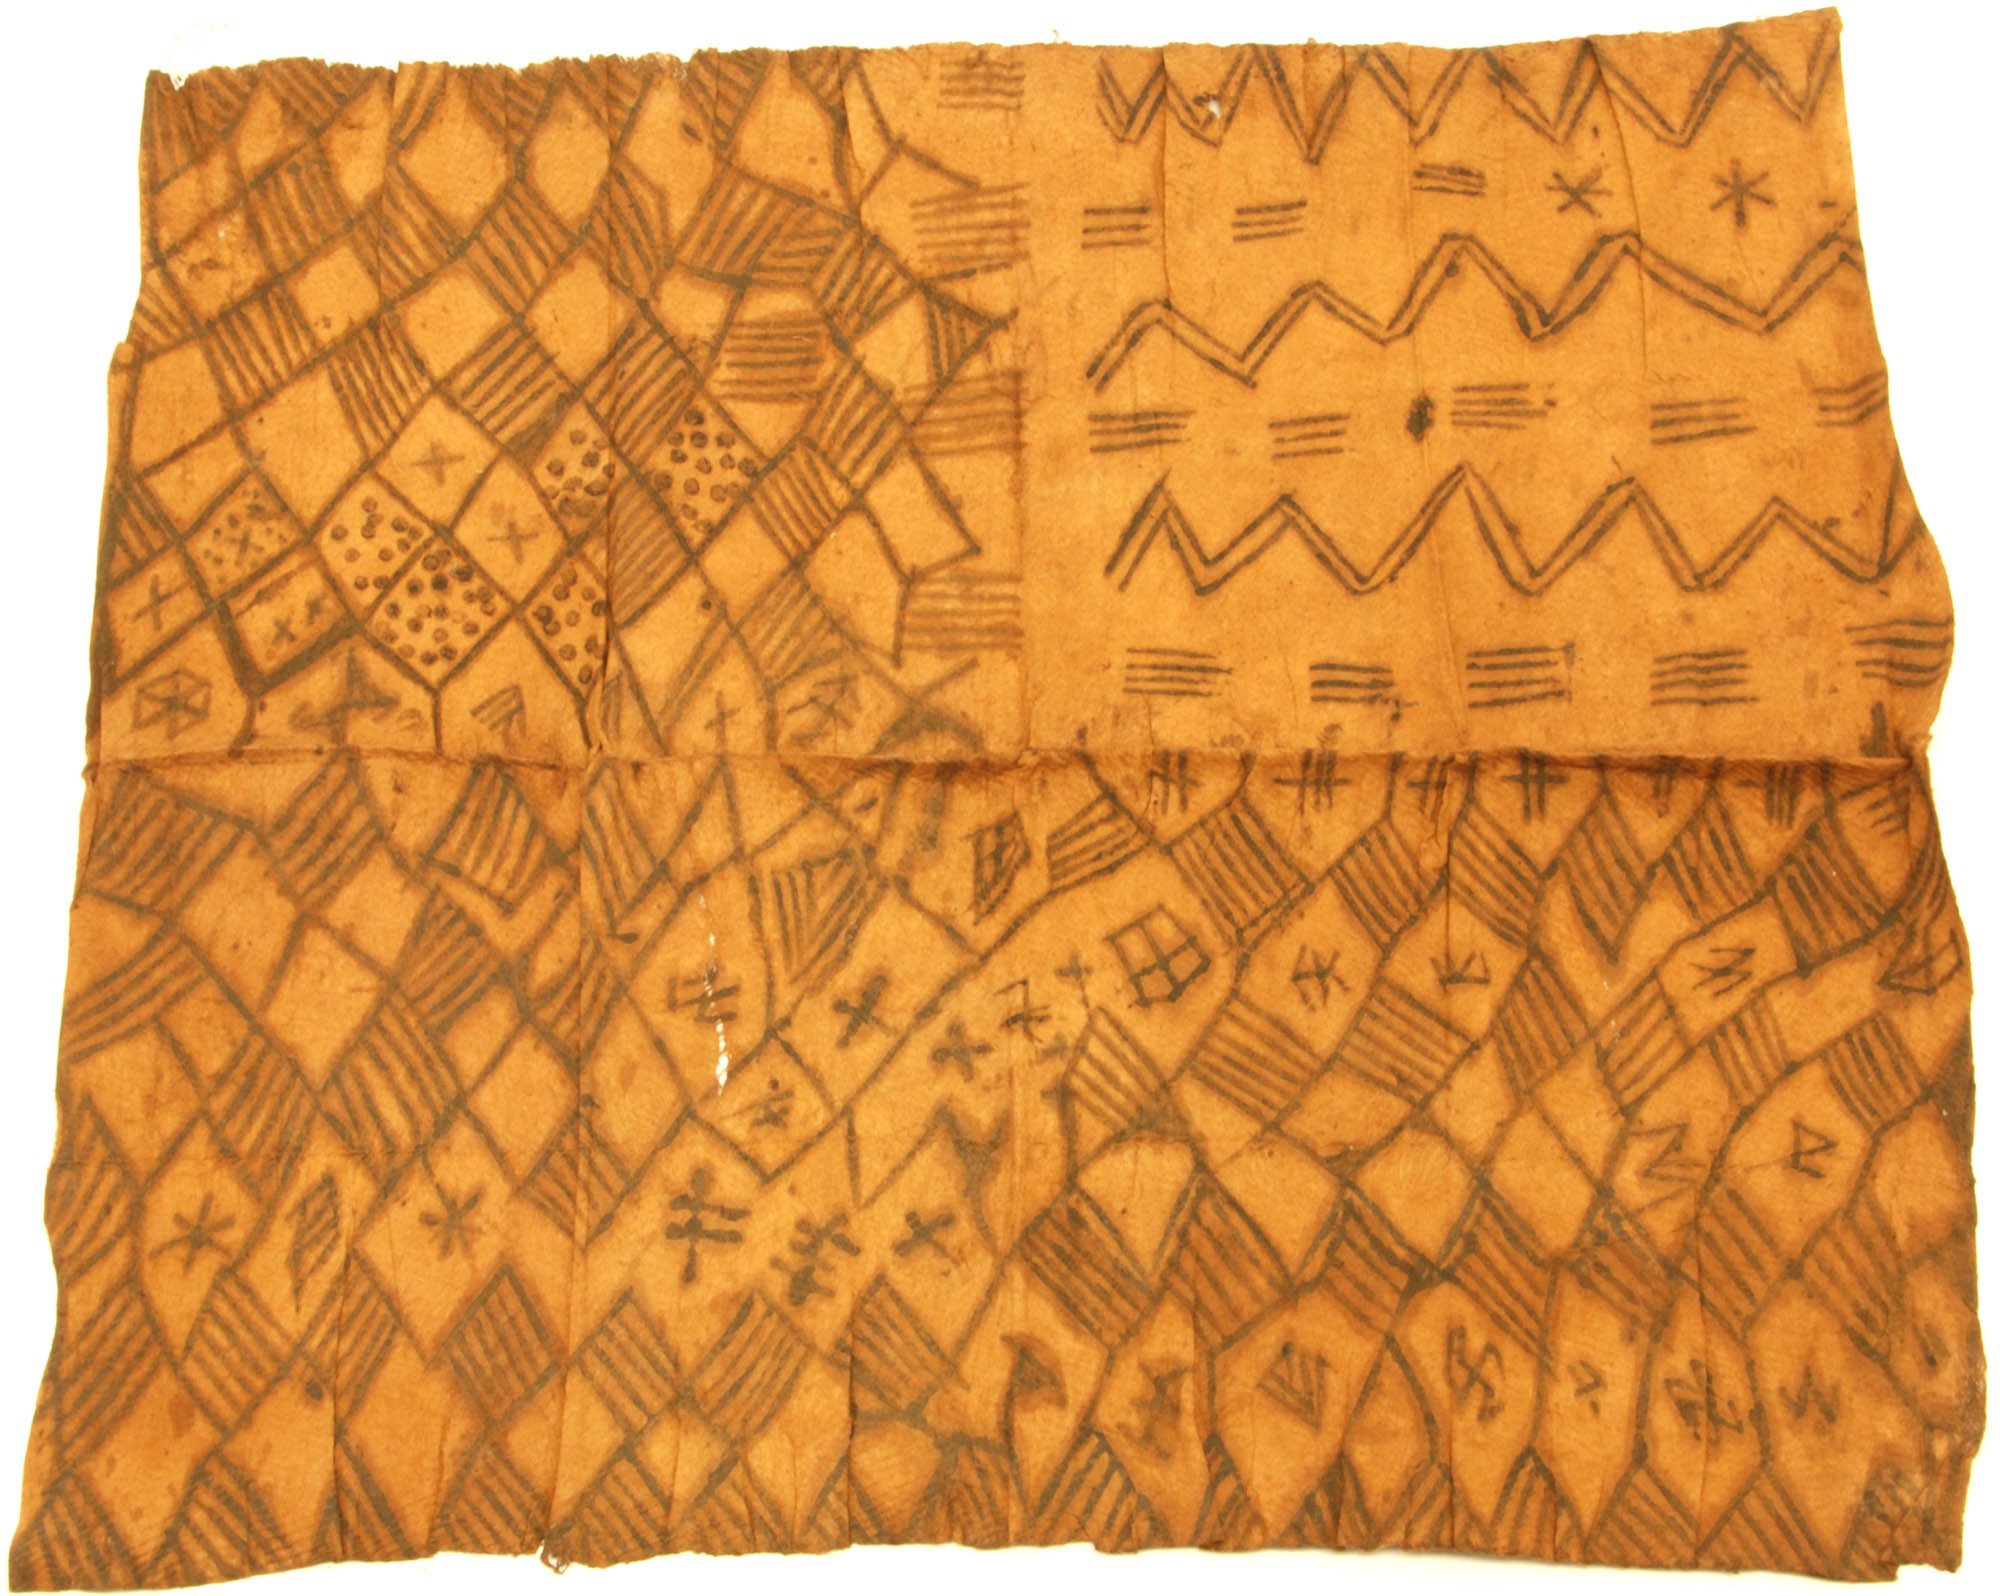 Bark Cloth (Tapa)